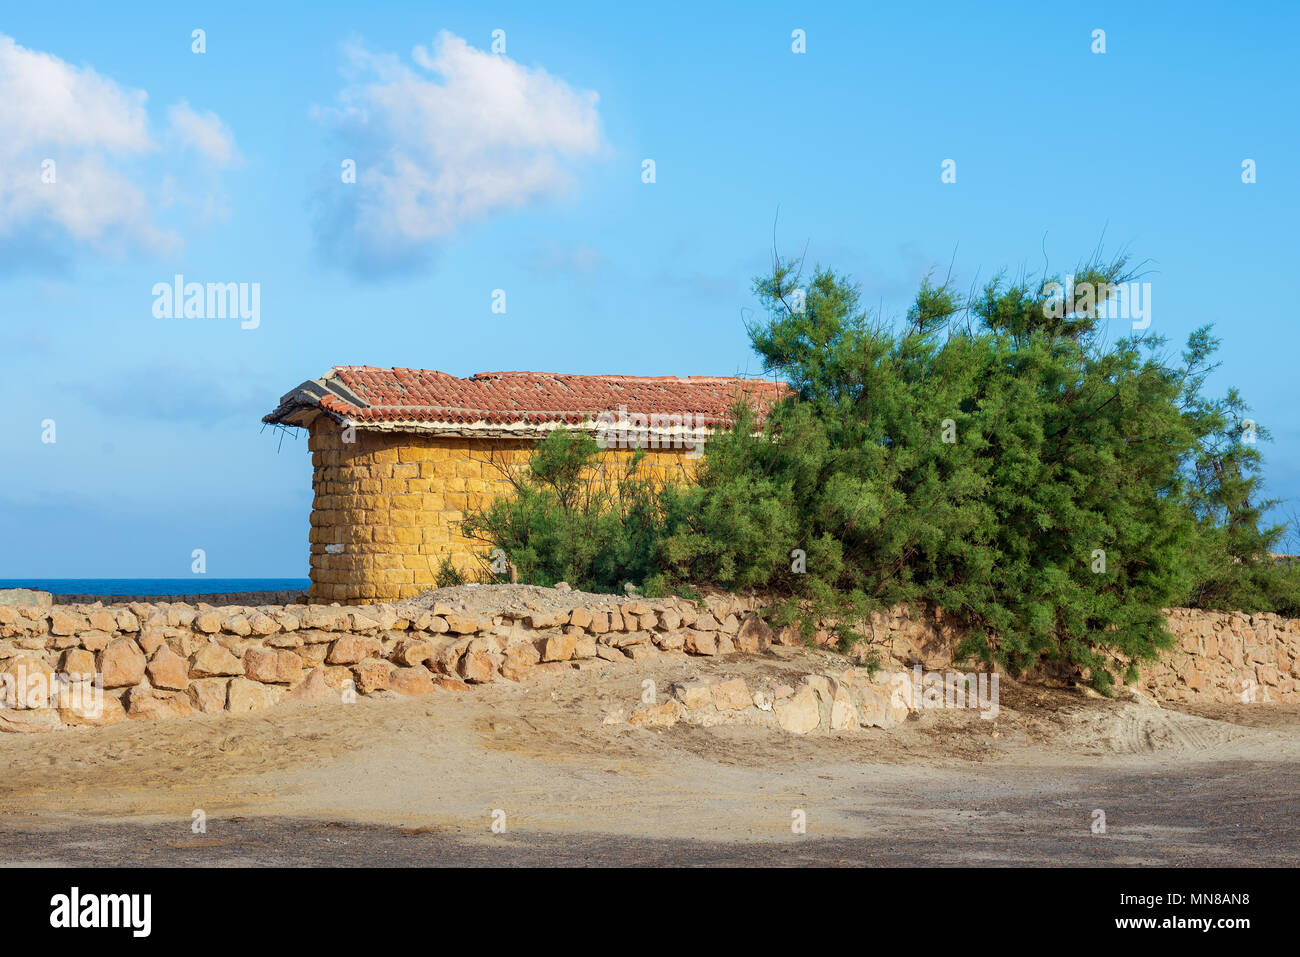 Abandoned building built of stone bricks and red tiled roof, short green tree and stone fence on background of partly cloudy sky and calm sea, Montaza - Stock Image